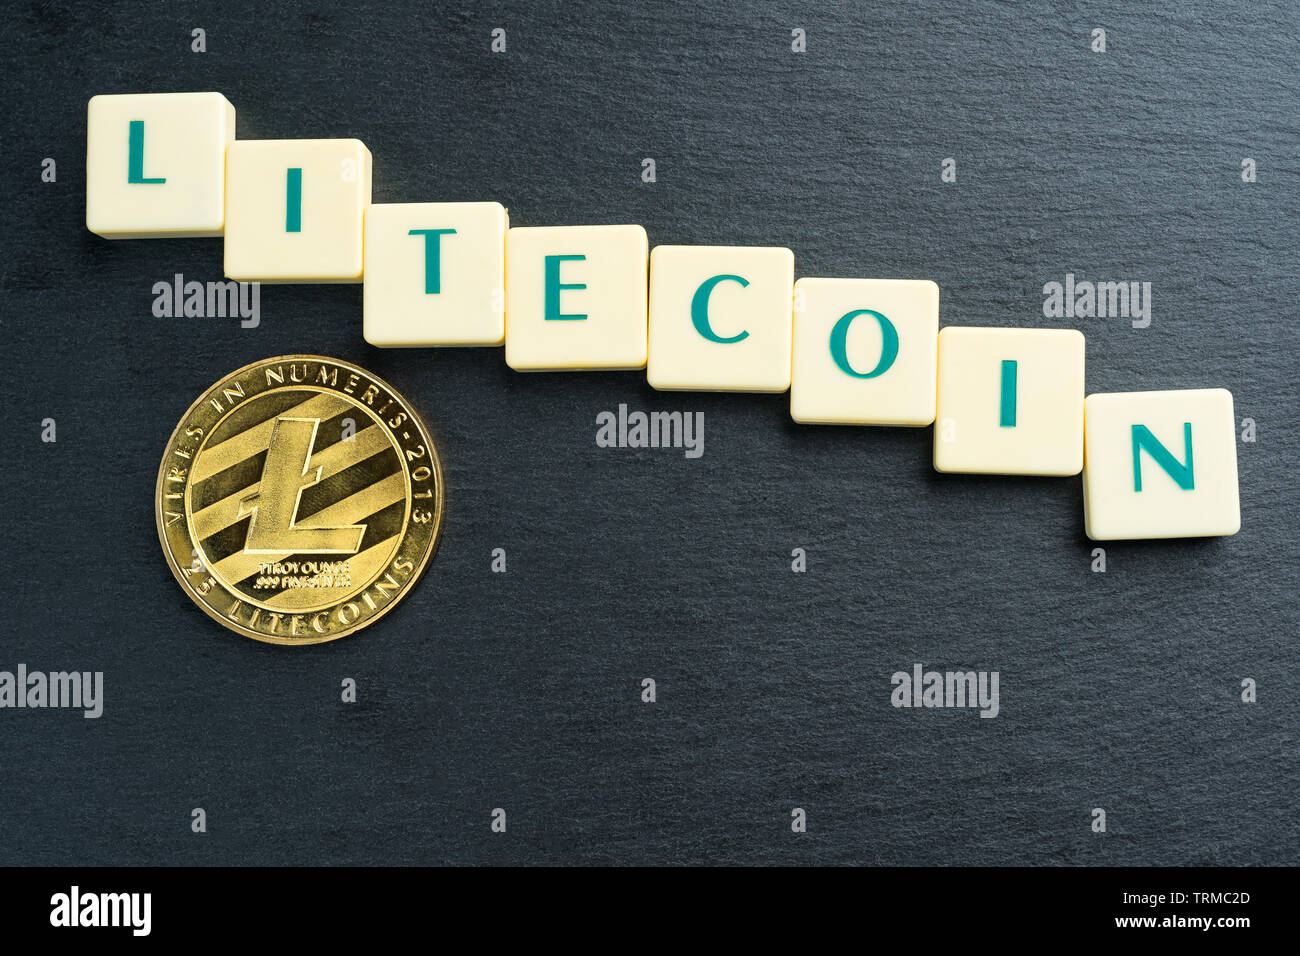 Physical Litecoin gold coin with text made out of letter tiles. Cryptocurrency decline or bear market. Copy space on the top bottom. - Stock Image